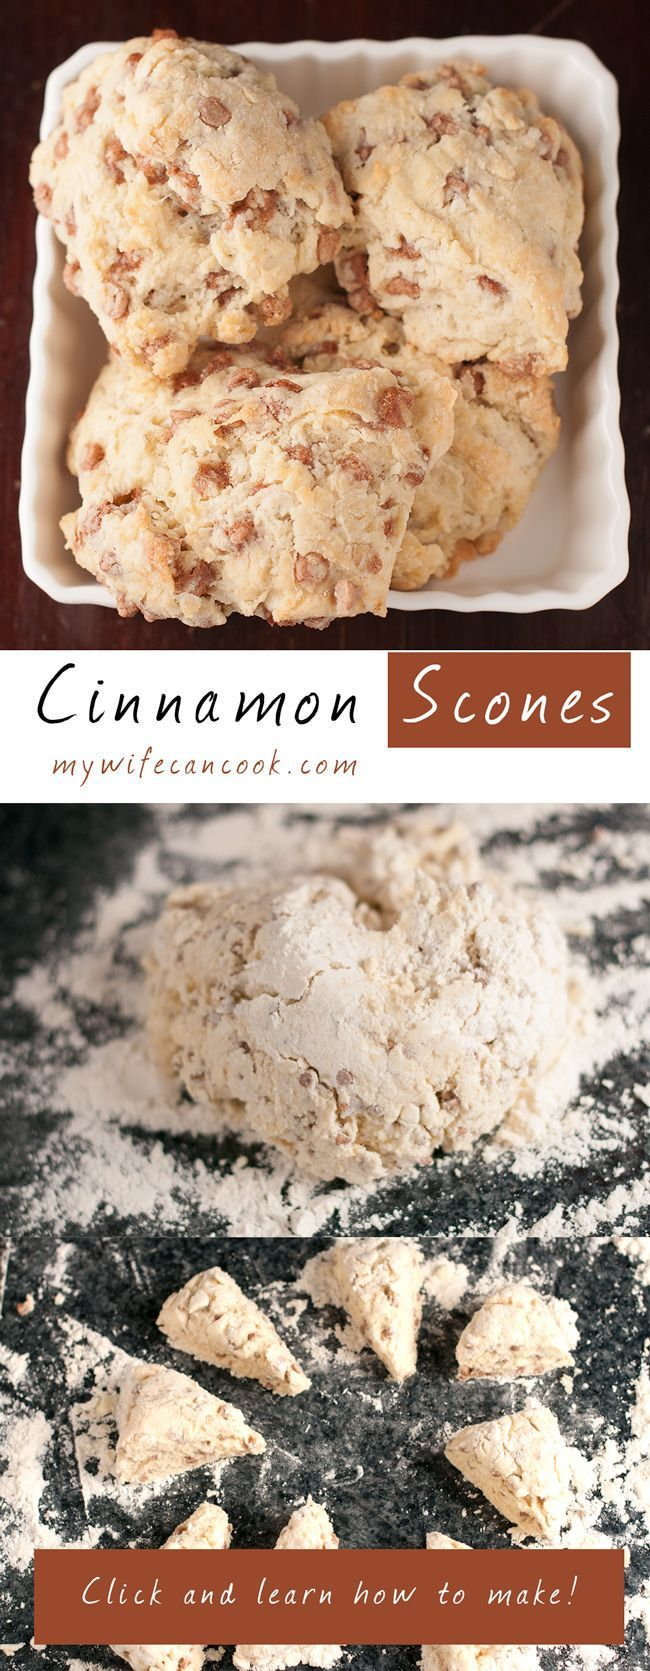 A perfect Sunday morning in our house includes Cinnamon Scones. These breakfast scones have definitely landed amongst our favorite recipes...a signature dish. A huge key to this dish are the cinnamon chips. We tried several brands but now only use cinnamon chips from King Arthur Flour. We love the quality of their ingredients and the end result is a cinnamon chip scone that is out of this world good! Are you in search of breakfast paradise? These scones are calling your name!